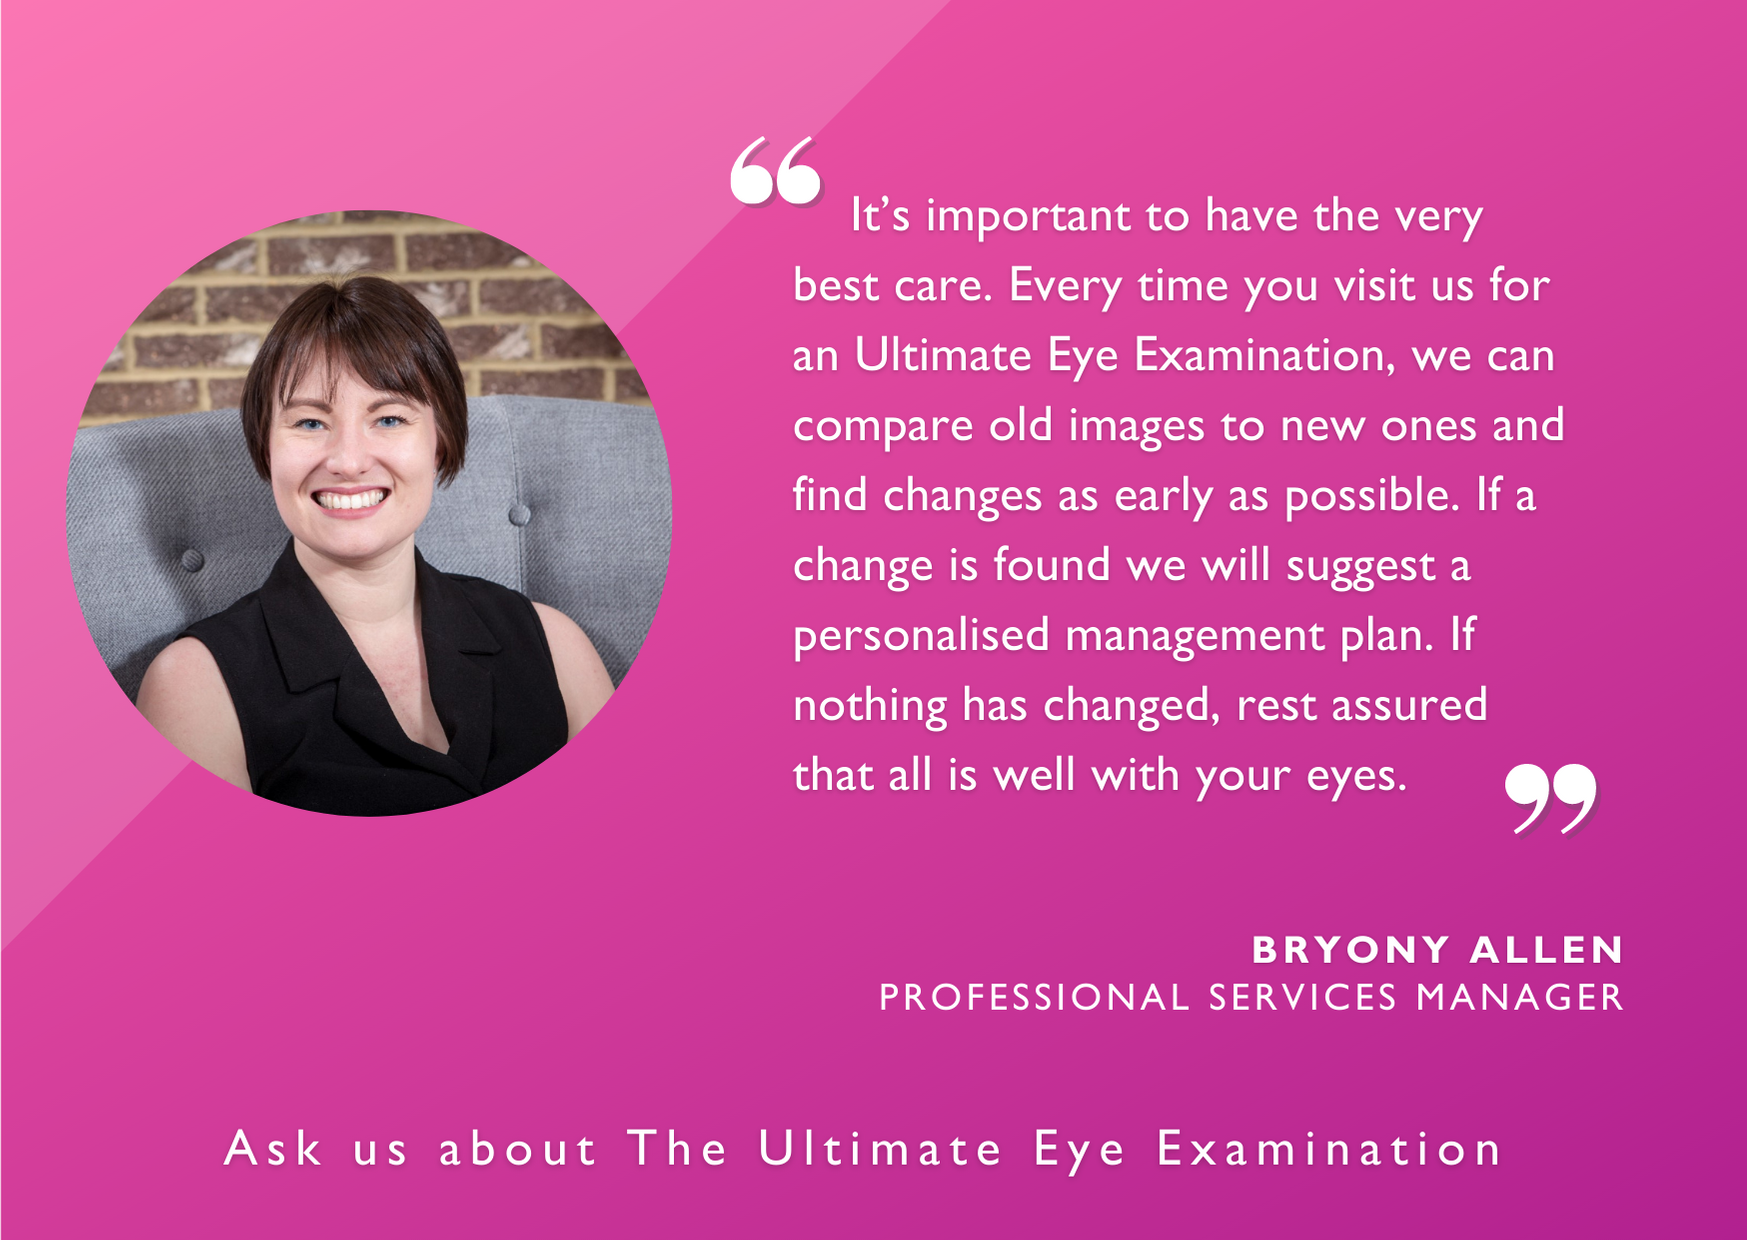 Bryony Allen, Professional Services Manager quoted on the Leightons Optomap